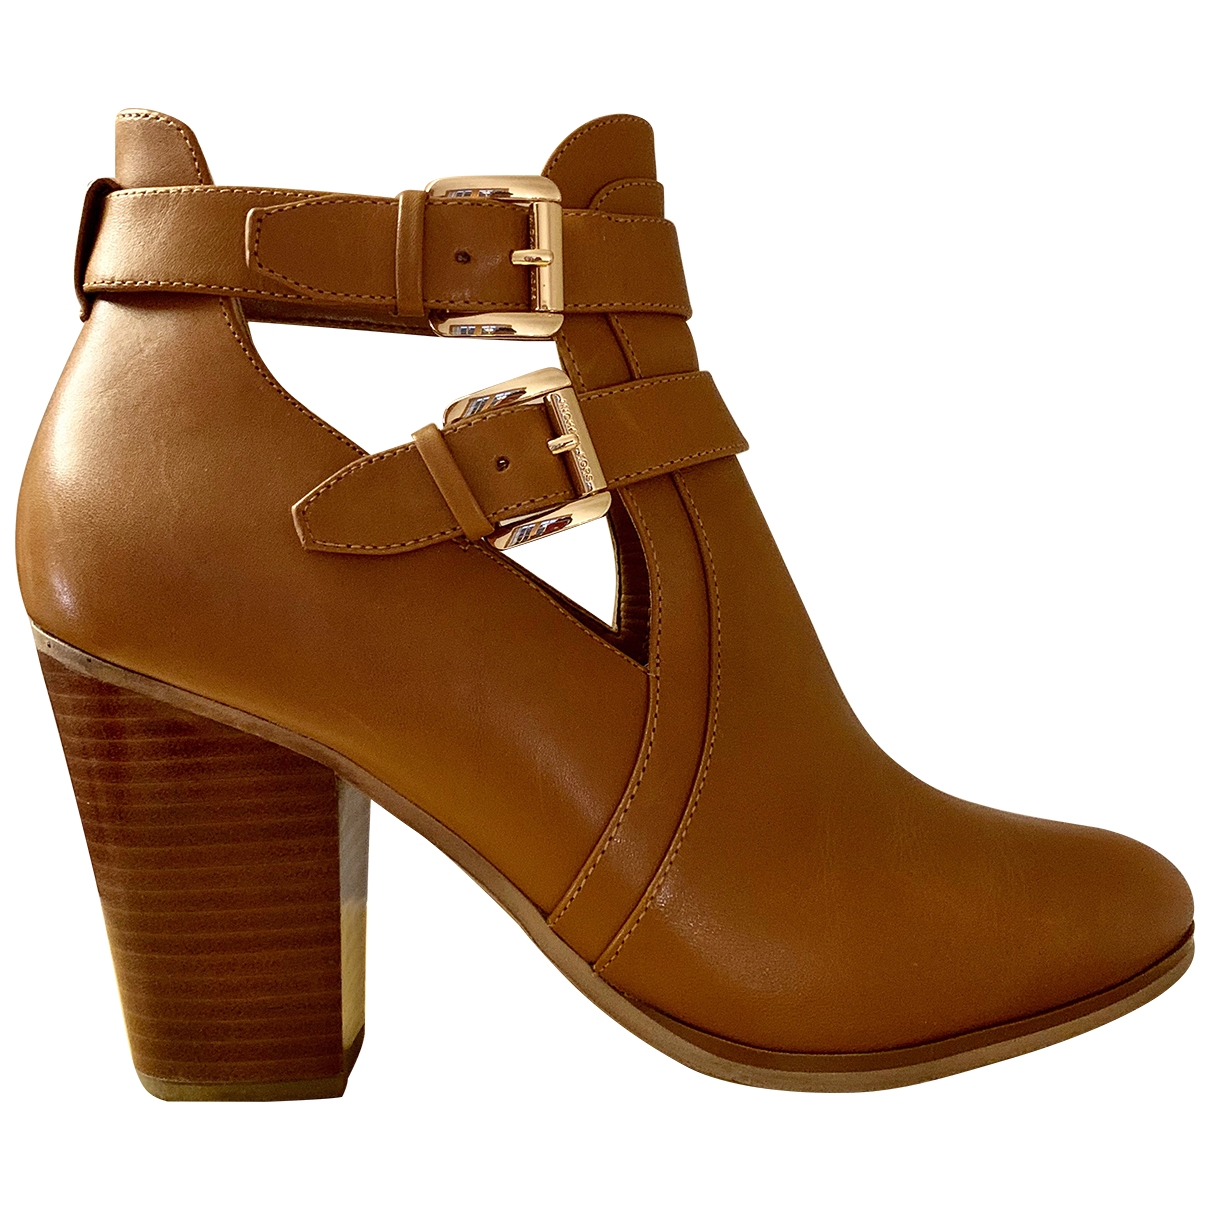 Michael Kors \N Camel Leather Ankle boots for Women 41 EU